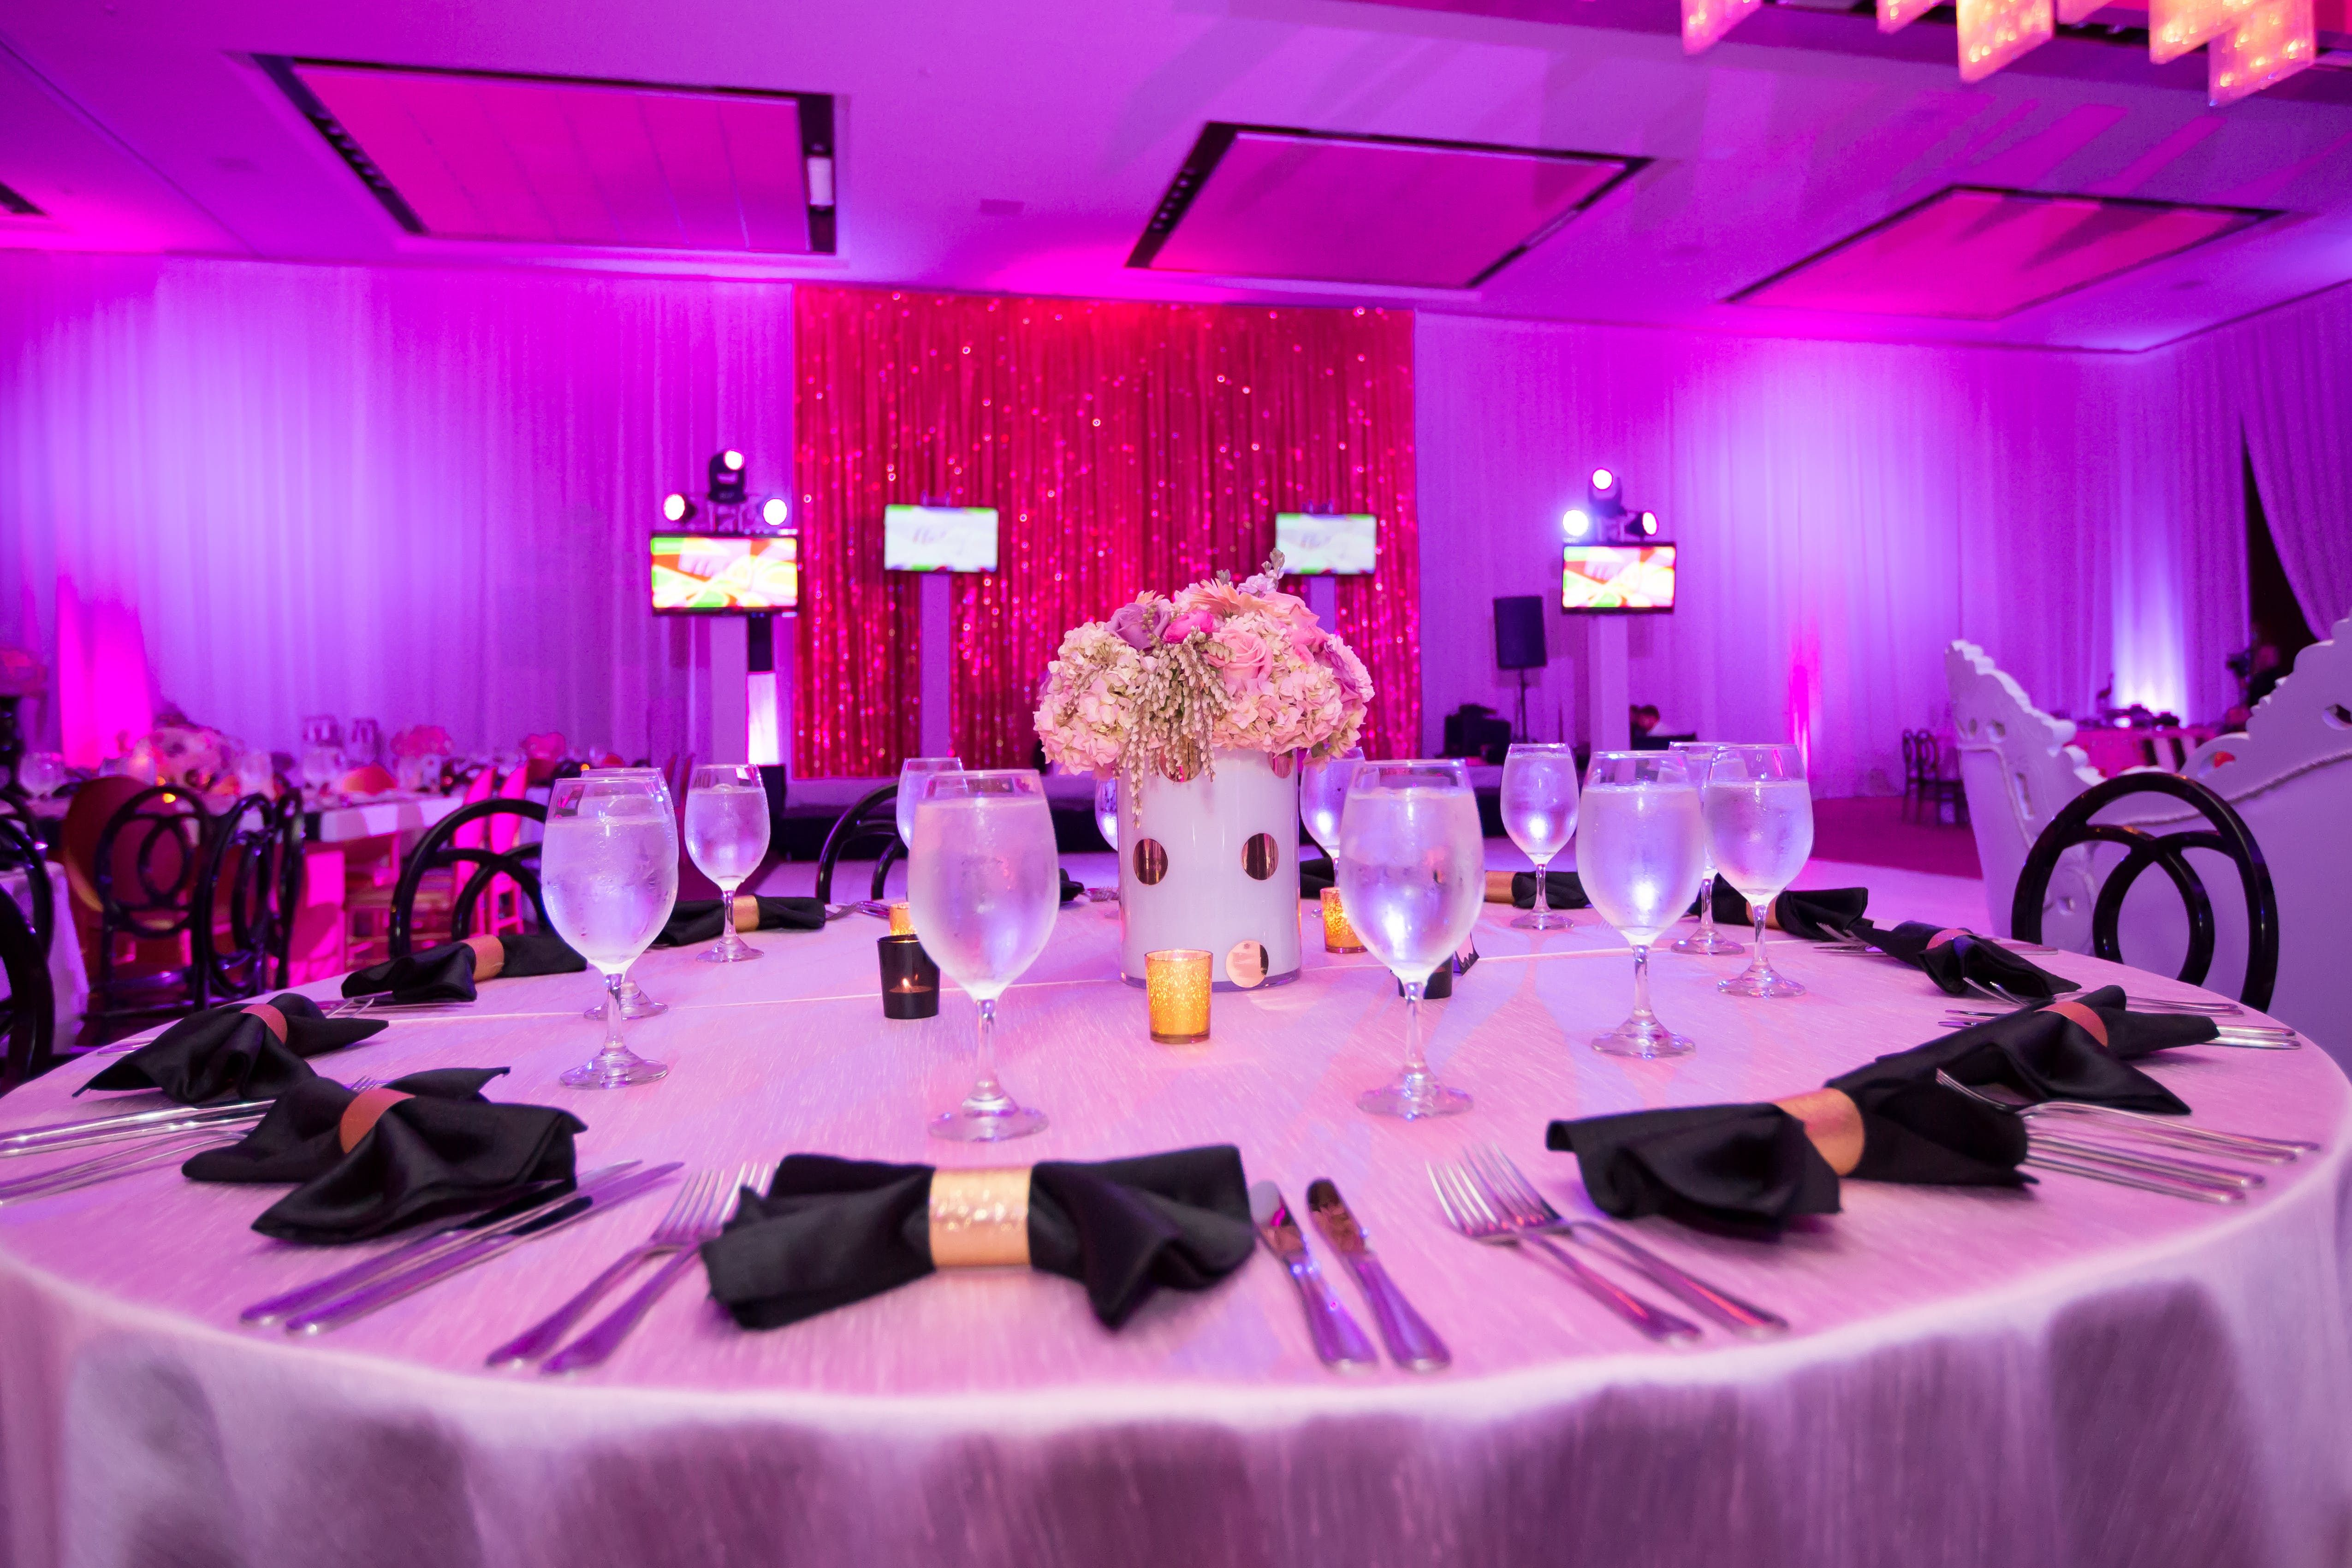 Black Pink Mod Bat Mitzvah Party Rentals And Decor By Gilded Group Decor Miami Event Design Miami Event Decor Miami E Event Decor Event Wedding Designs